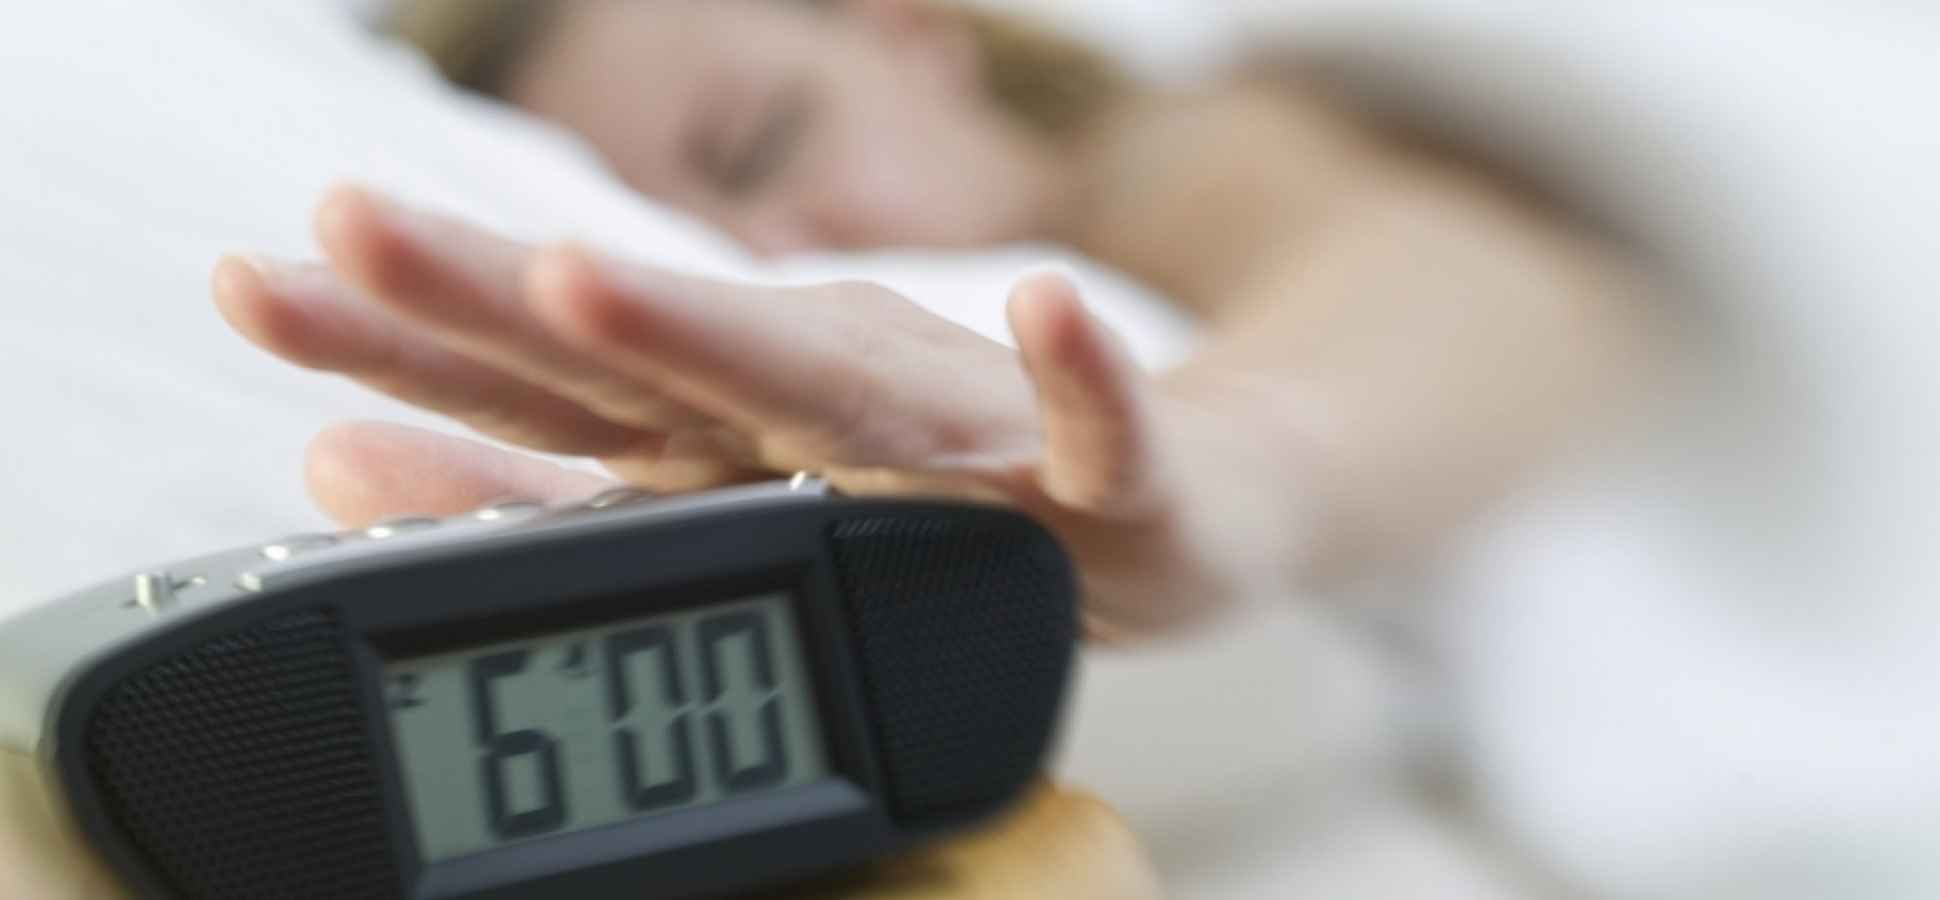 Still Tired? There's Help to Outsmart the Snooze Button